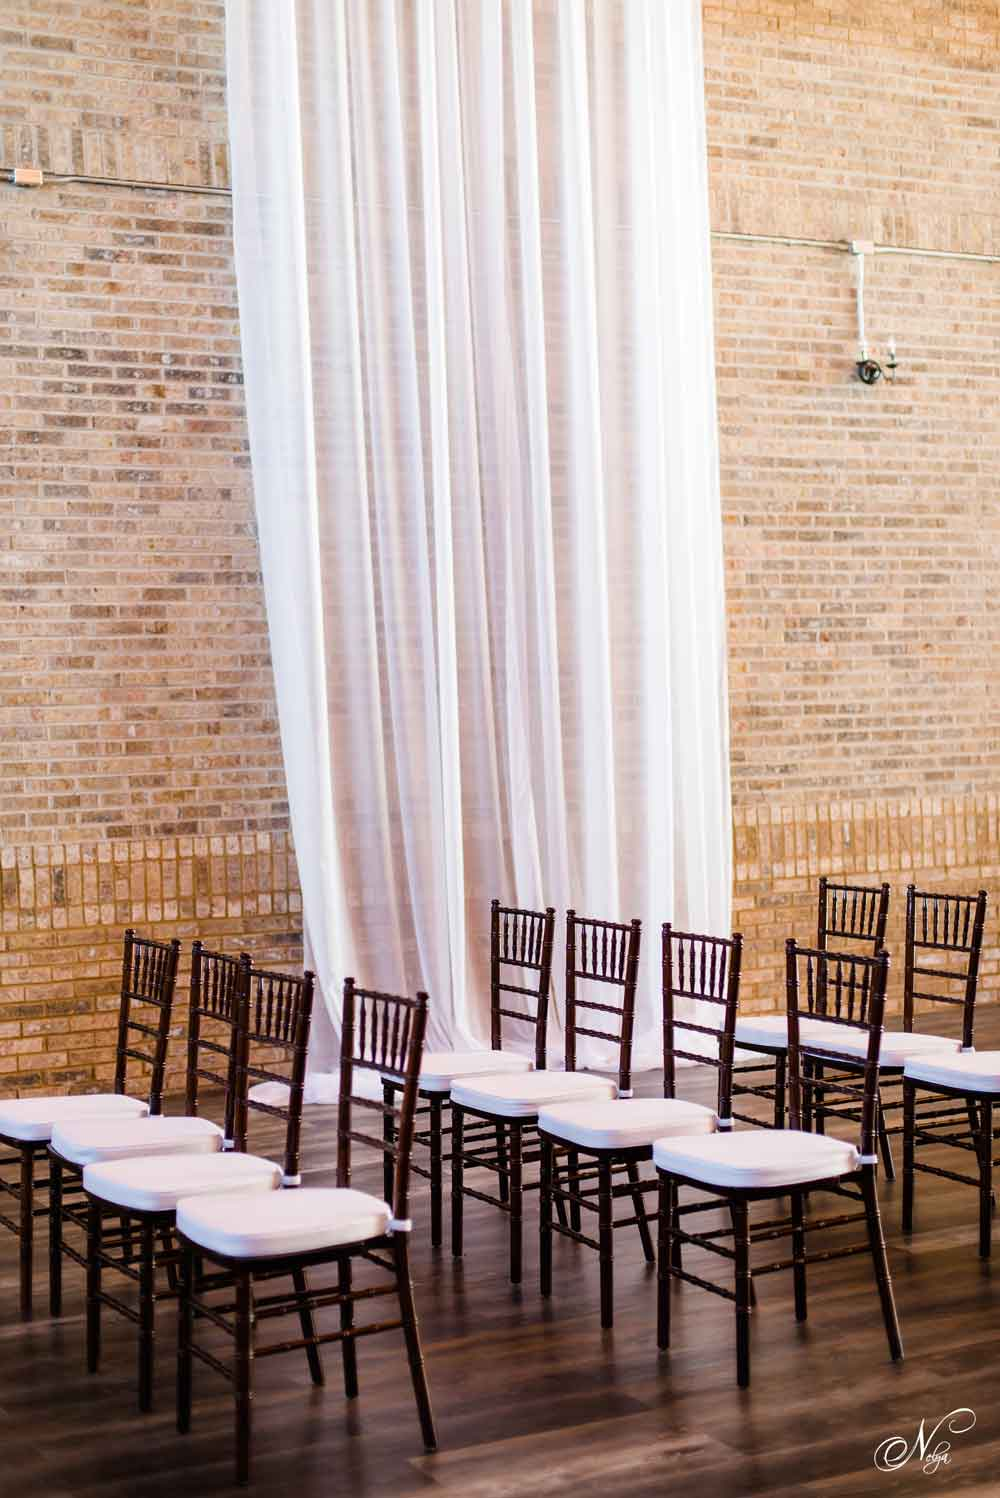 fruitwood chairs with brick wall and white draping